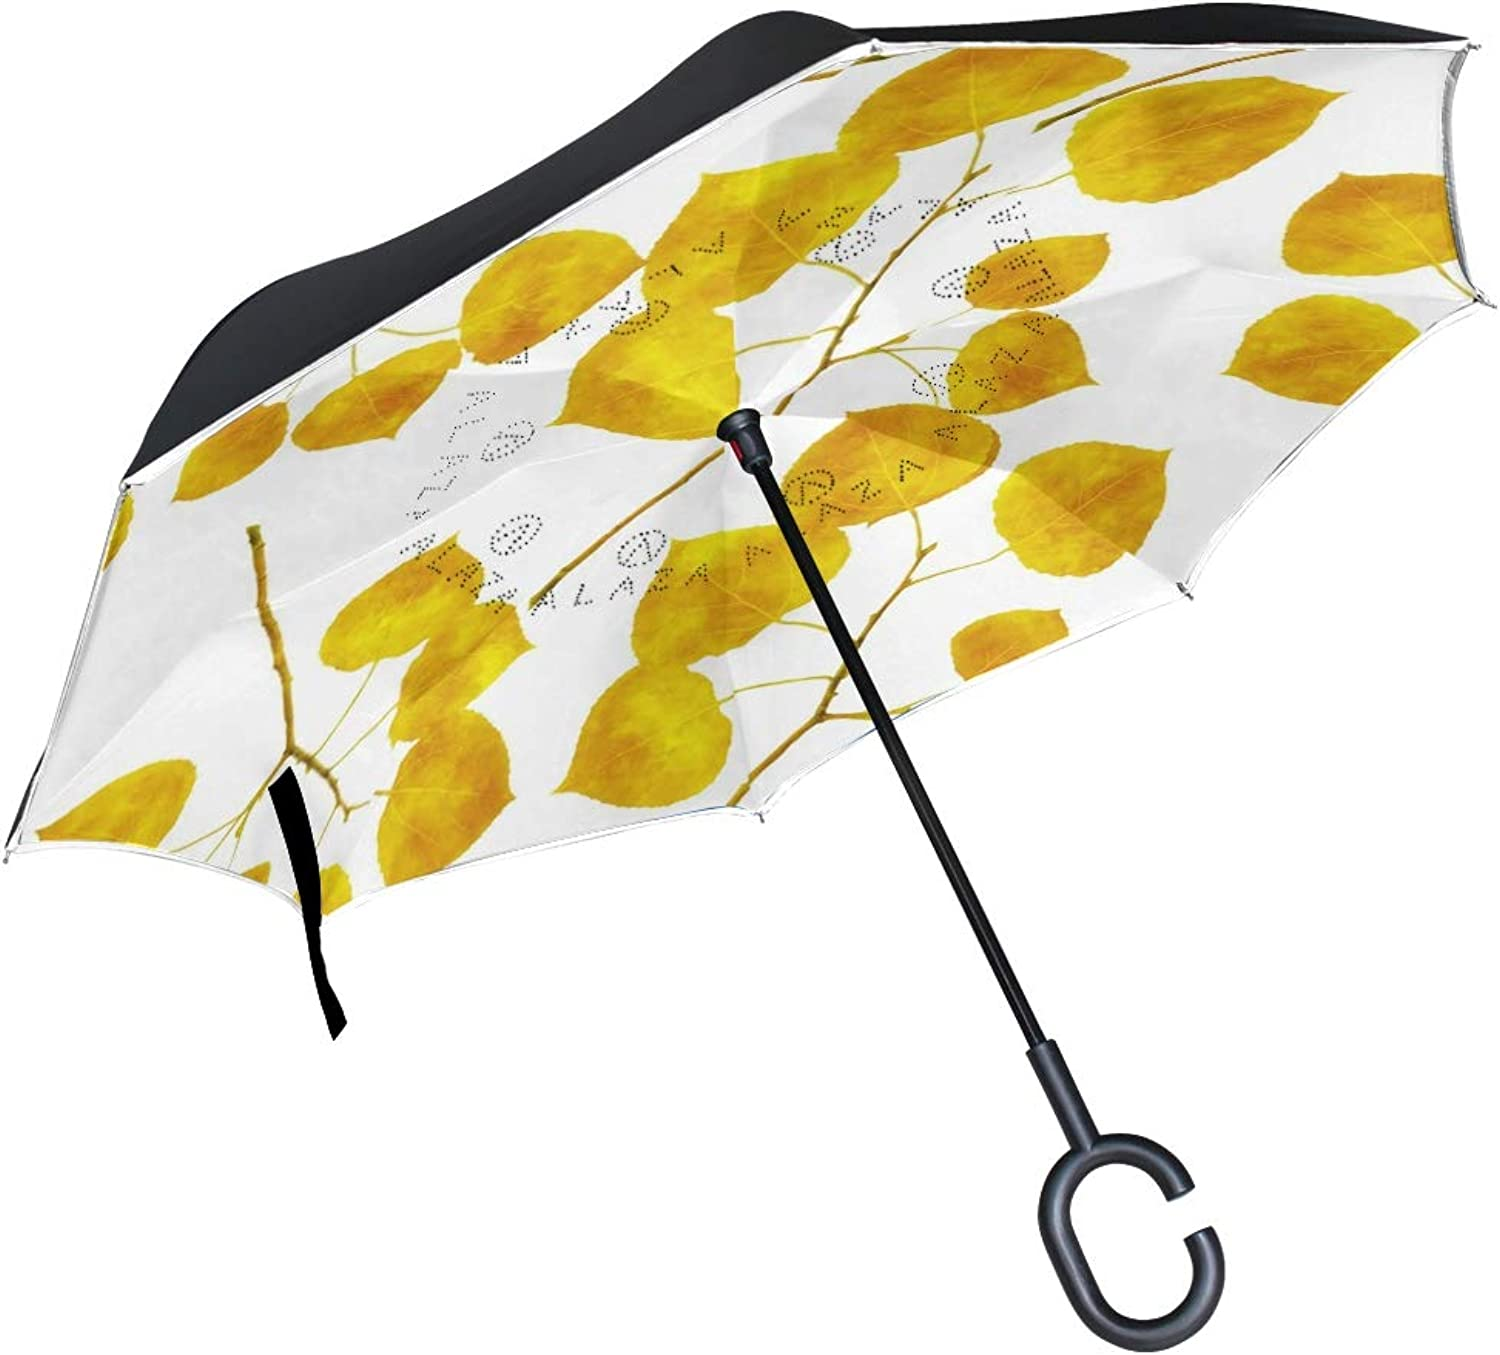 Double Layer Aspen Leaves Ingreened Umbrellas Reverse Folding Umbrella for Car, DKRetro CShaped Handle Umbrella with Light Reflection Strip